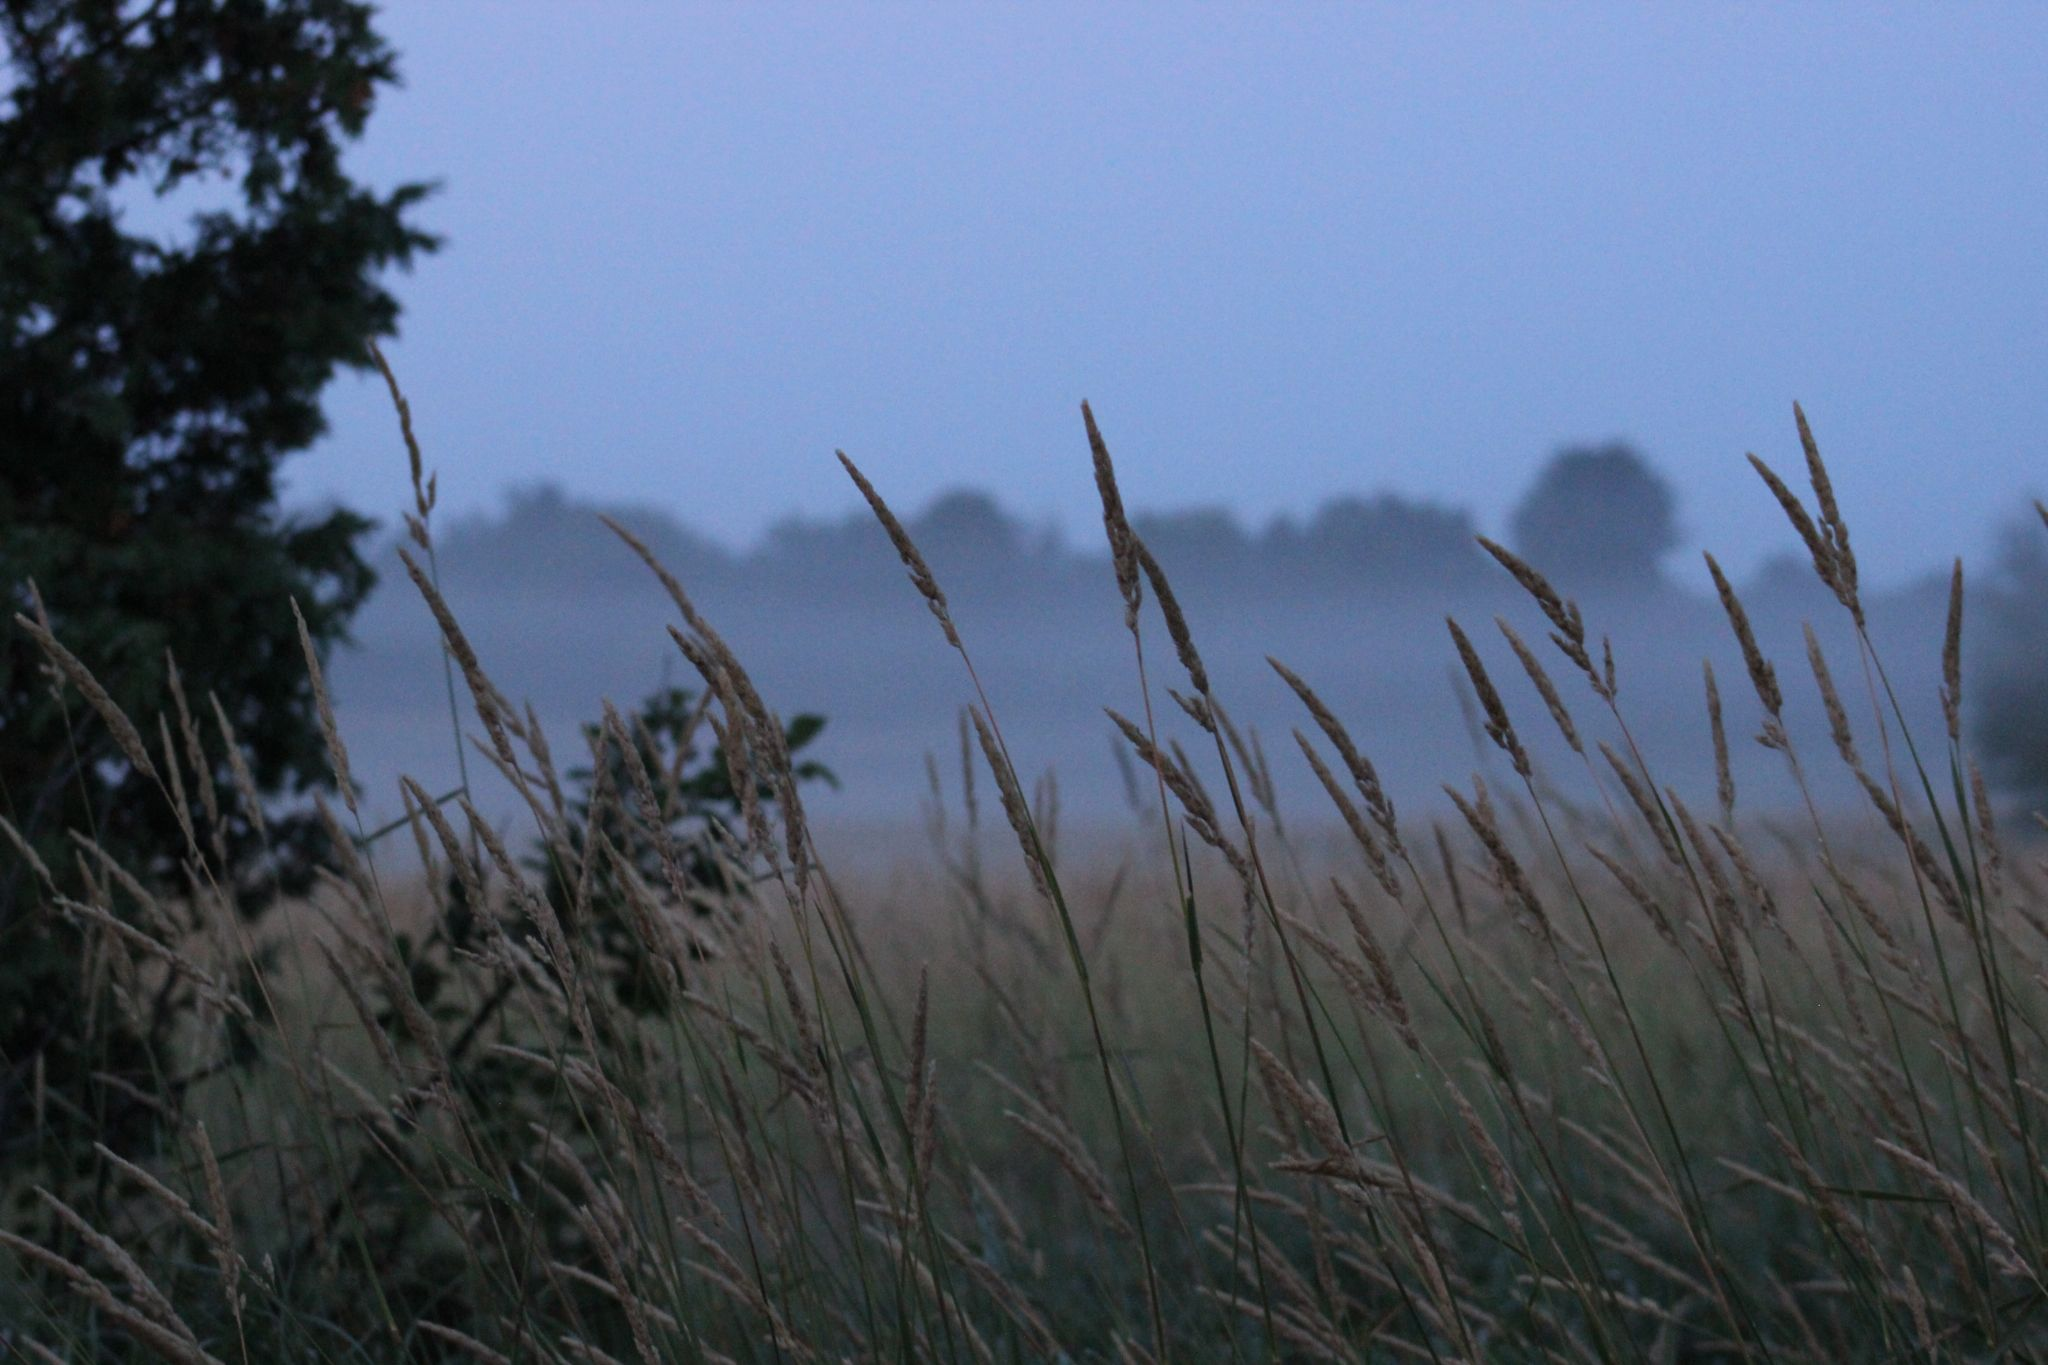 Wheat in fog by April Murata Campbell